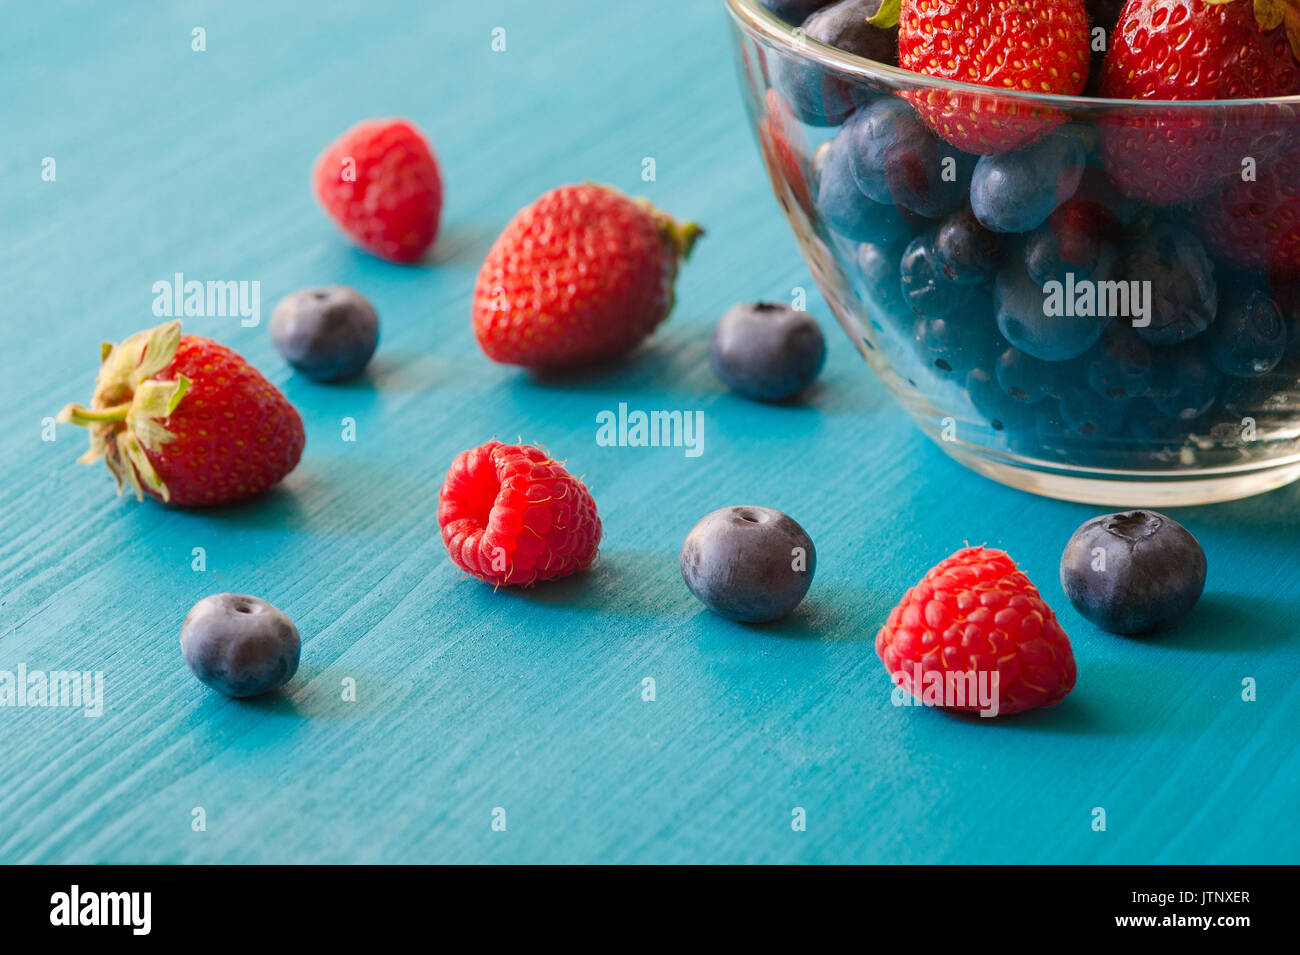 Blueberries and strawberry in Glass bowl on wooden table background - Stock Image